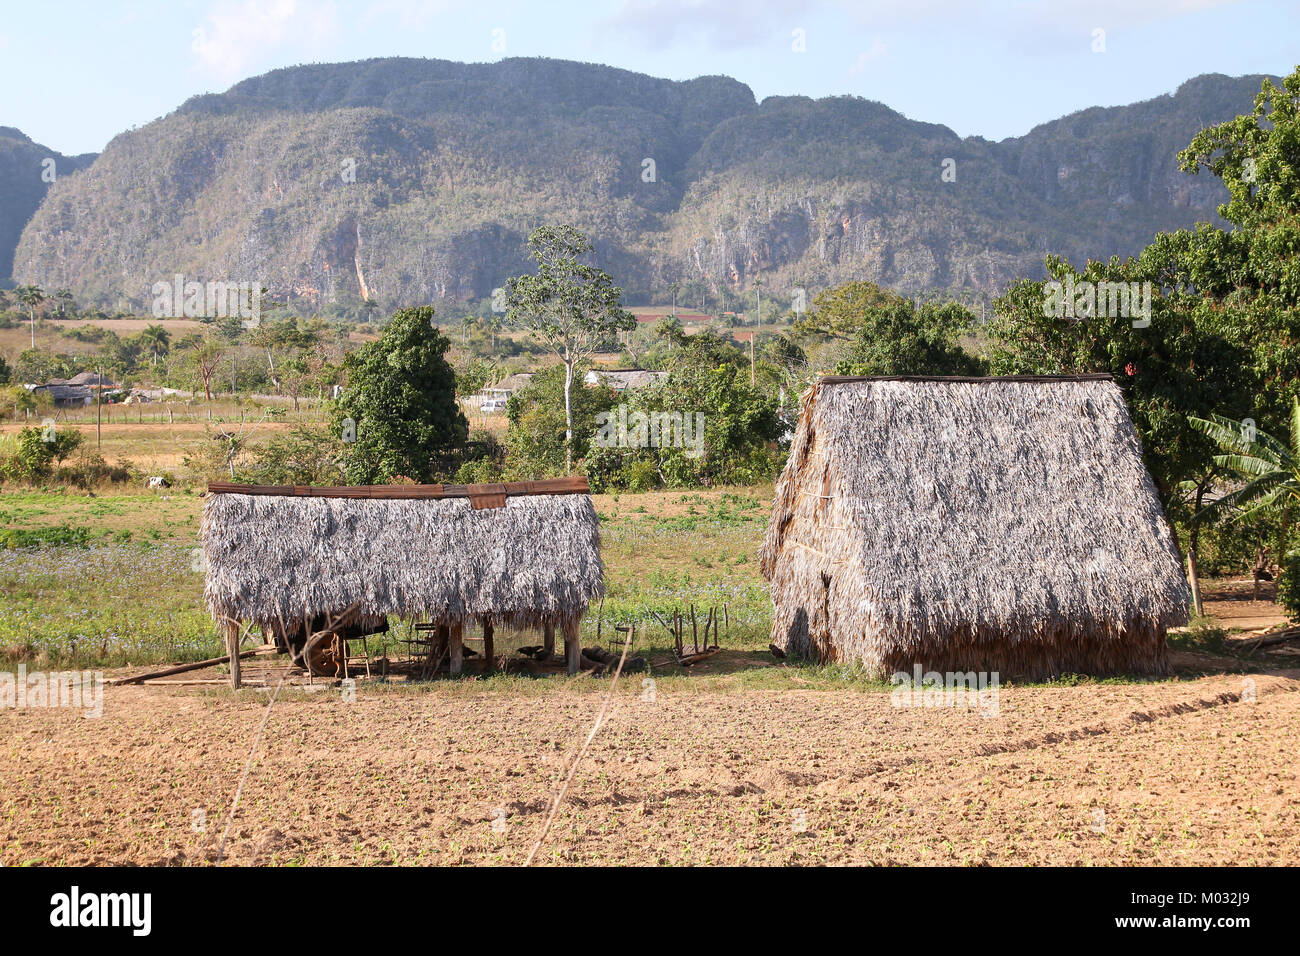 Cuba - countryside thatched huts and karstic mogotes in Vinales National Park. UNESCO World Heritage Site. - Stock Image